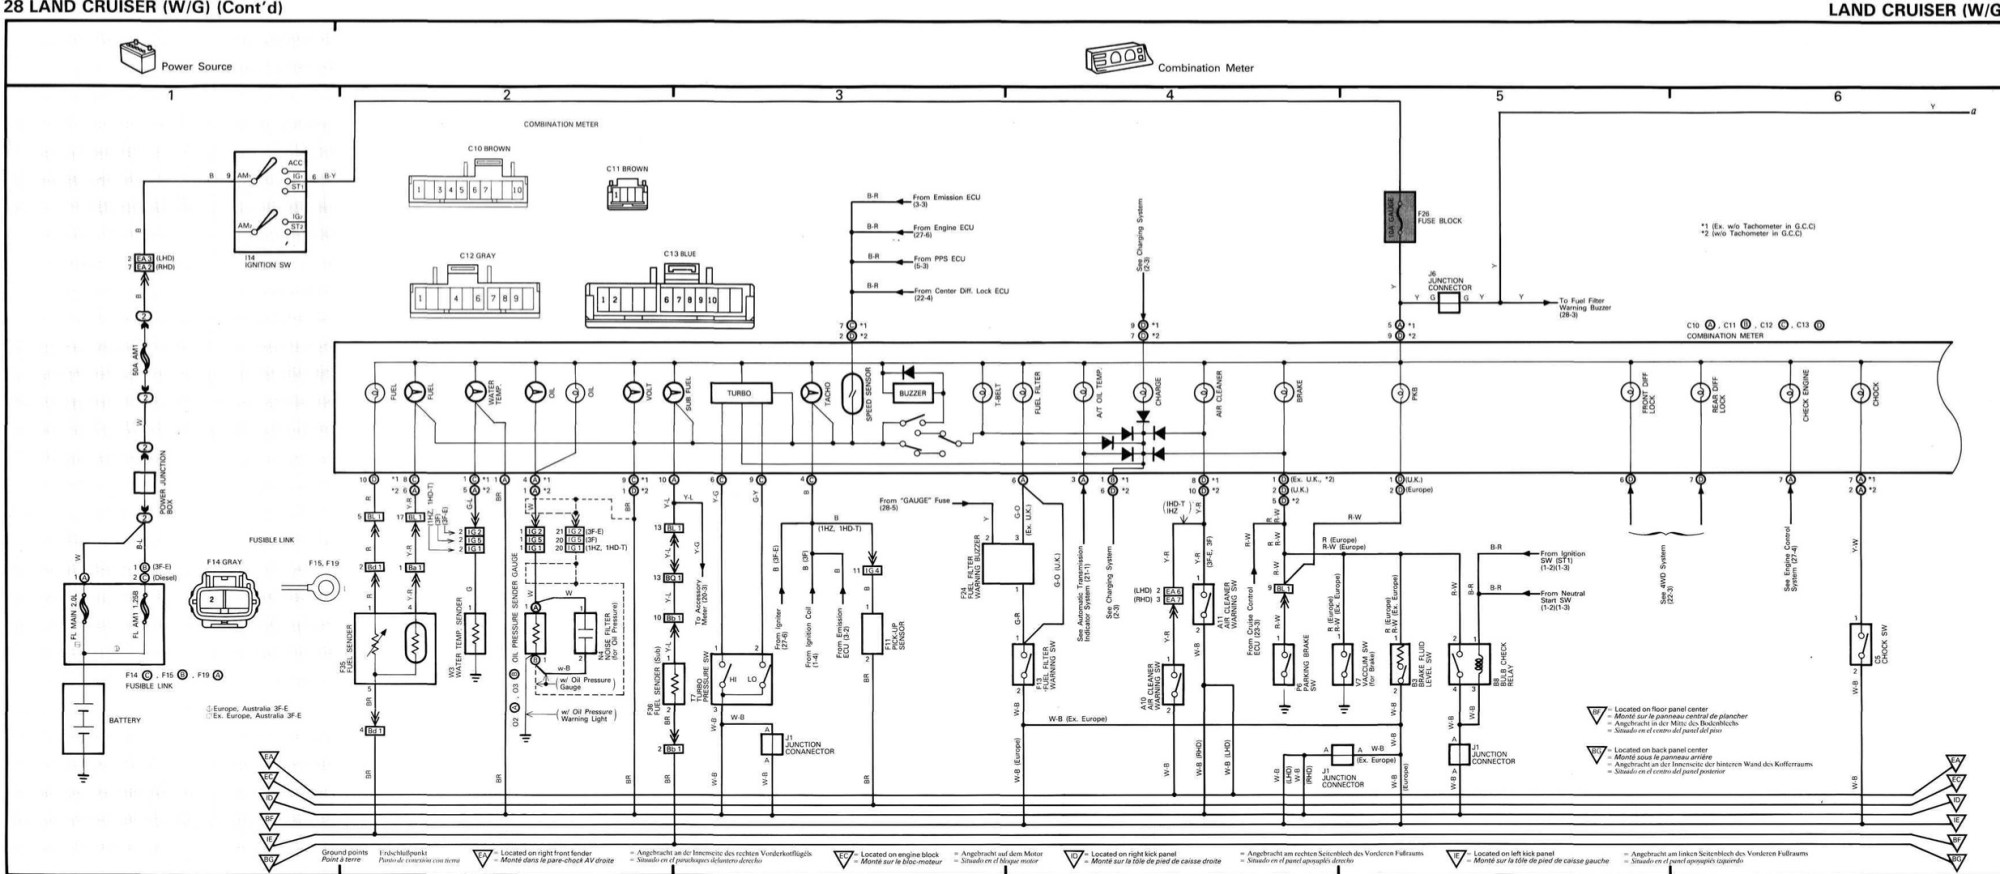 hight resolution of 1996 toyota land cruiser wiring diagram wiring diagram dat toyota fj40 land cruiser wiring diagram